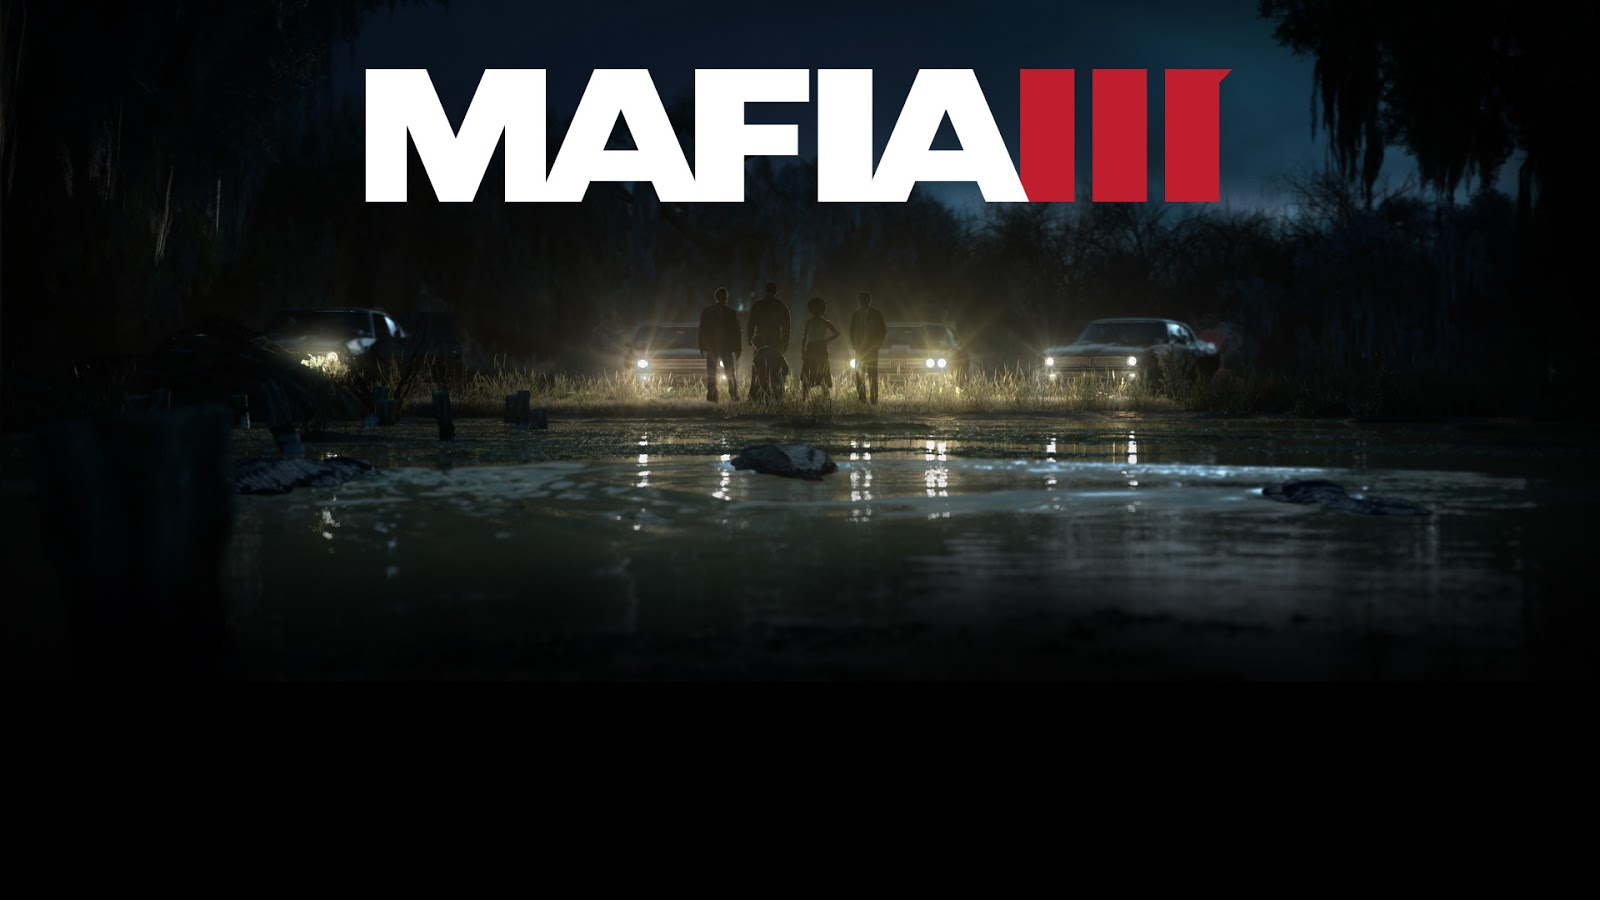 MAFIA 3 game hd wallpaper 1920x1080